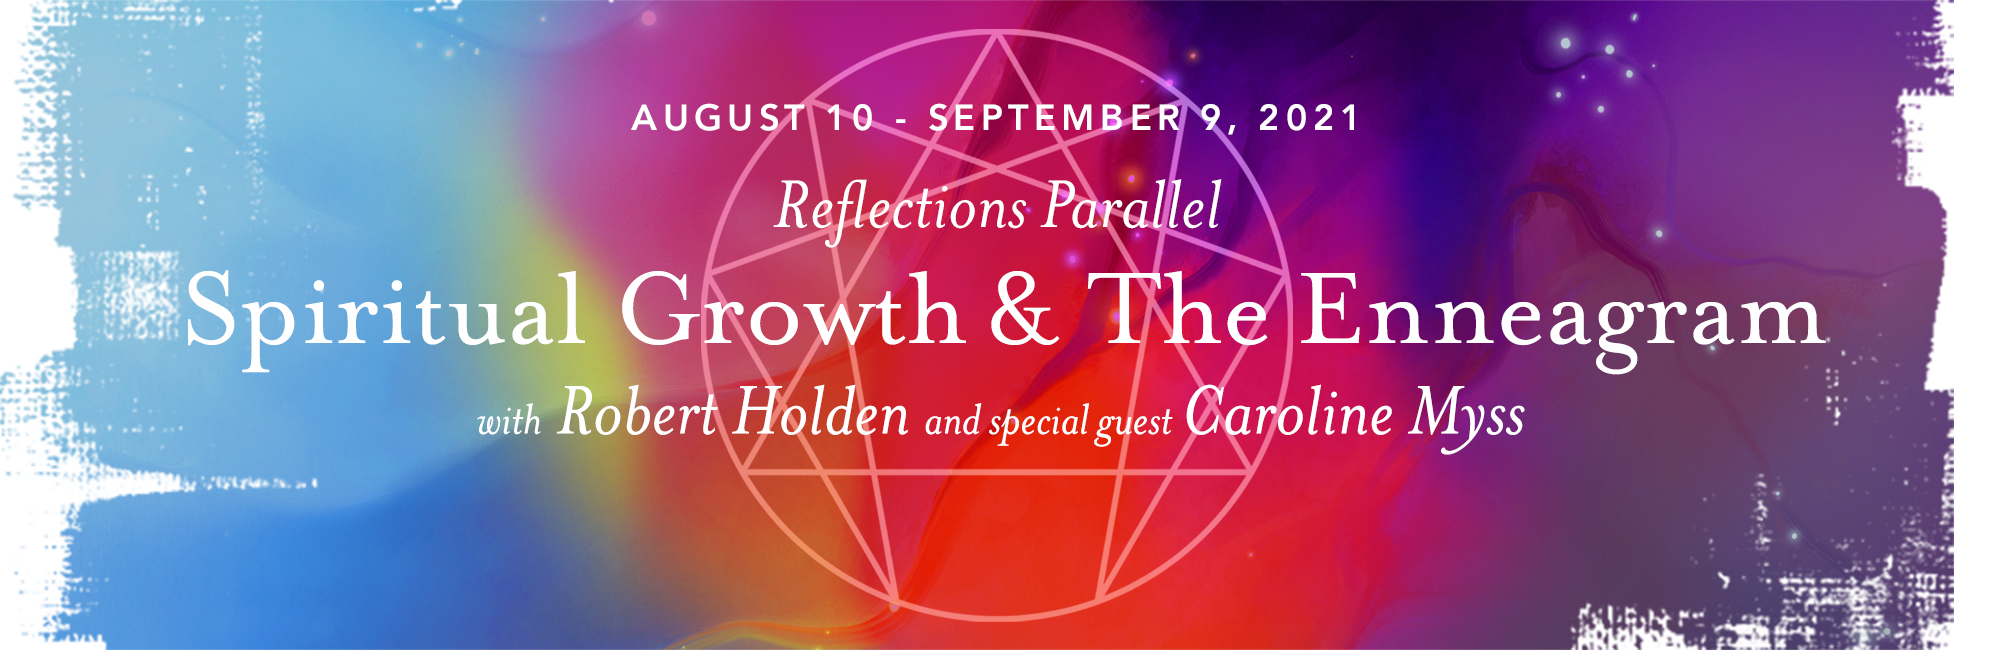 Reflections Parallel: Spiritual Growth & The Enneagram